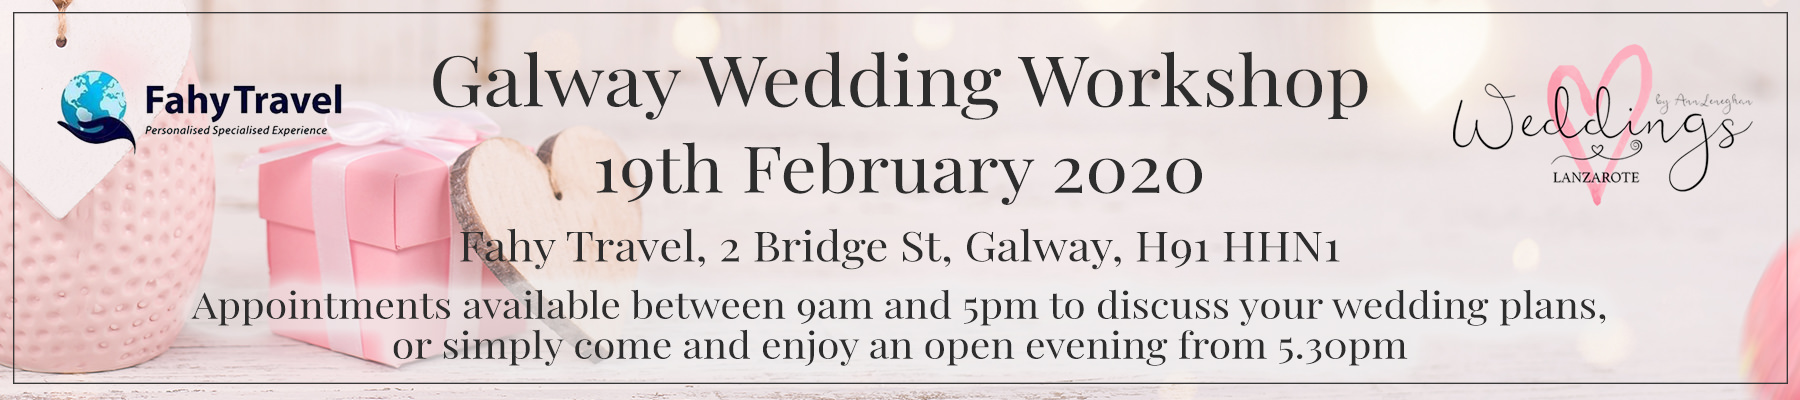 Lanzarote Wedding Planner Galway Wedding Workshop